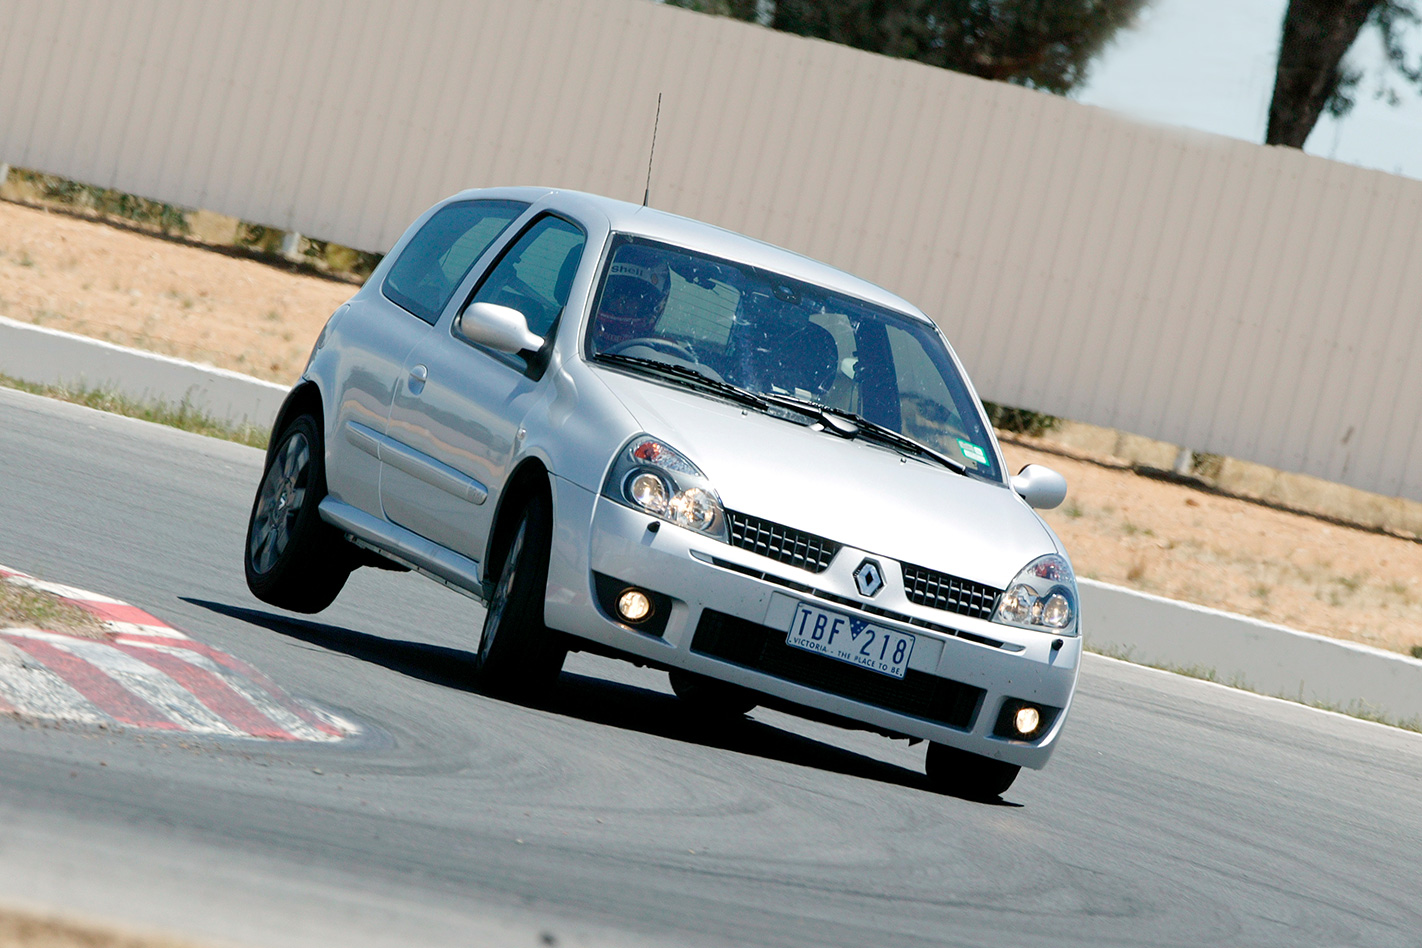 2005-Renault-Sport-Clio-Cup-front.jpg